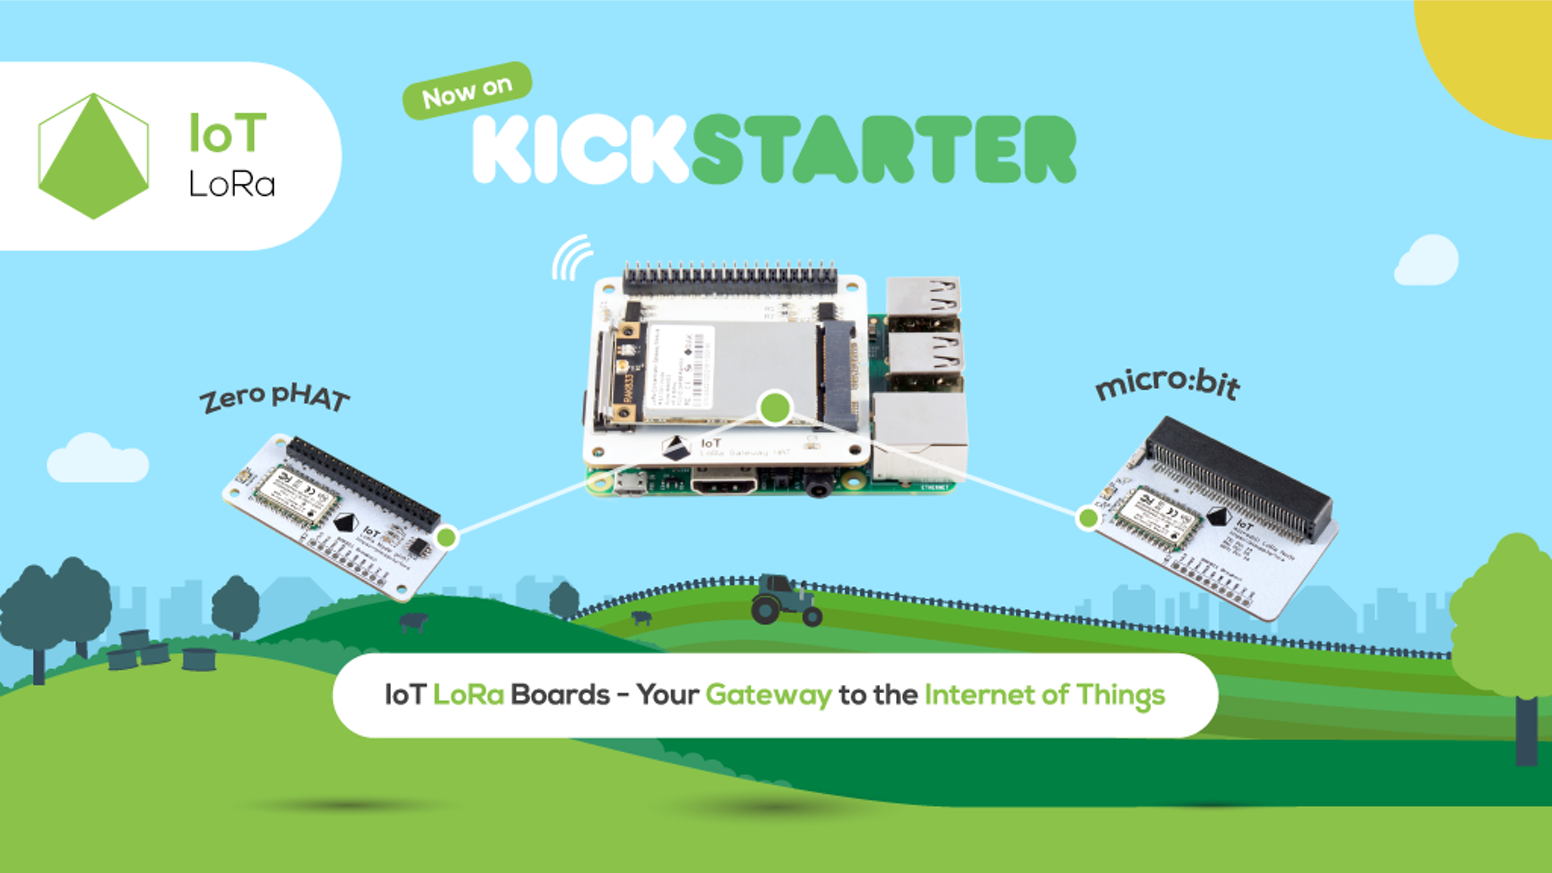 IoT LoRa Boards - Your Gateway to the Internet of Things by Pi